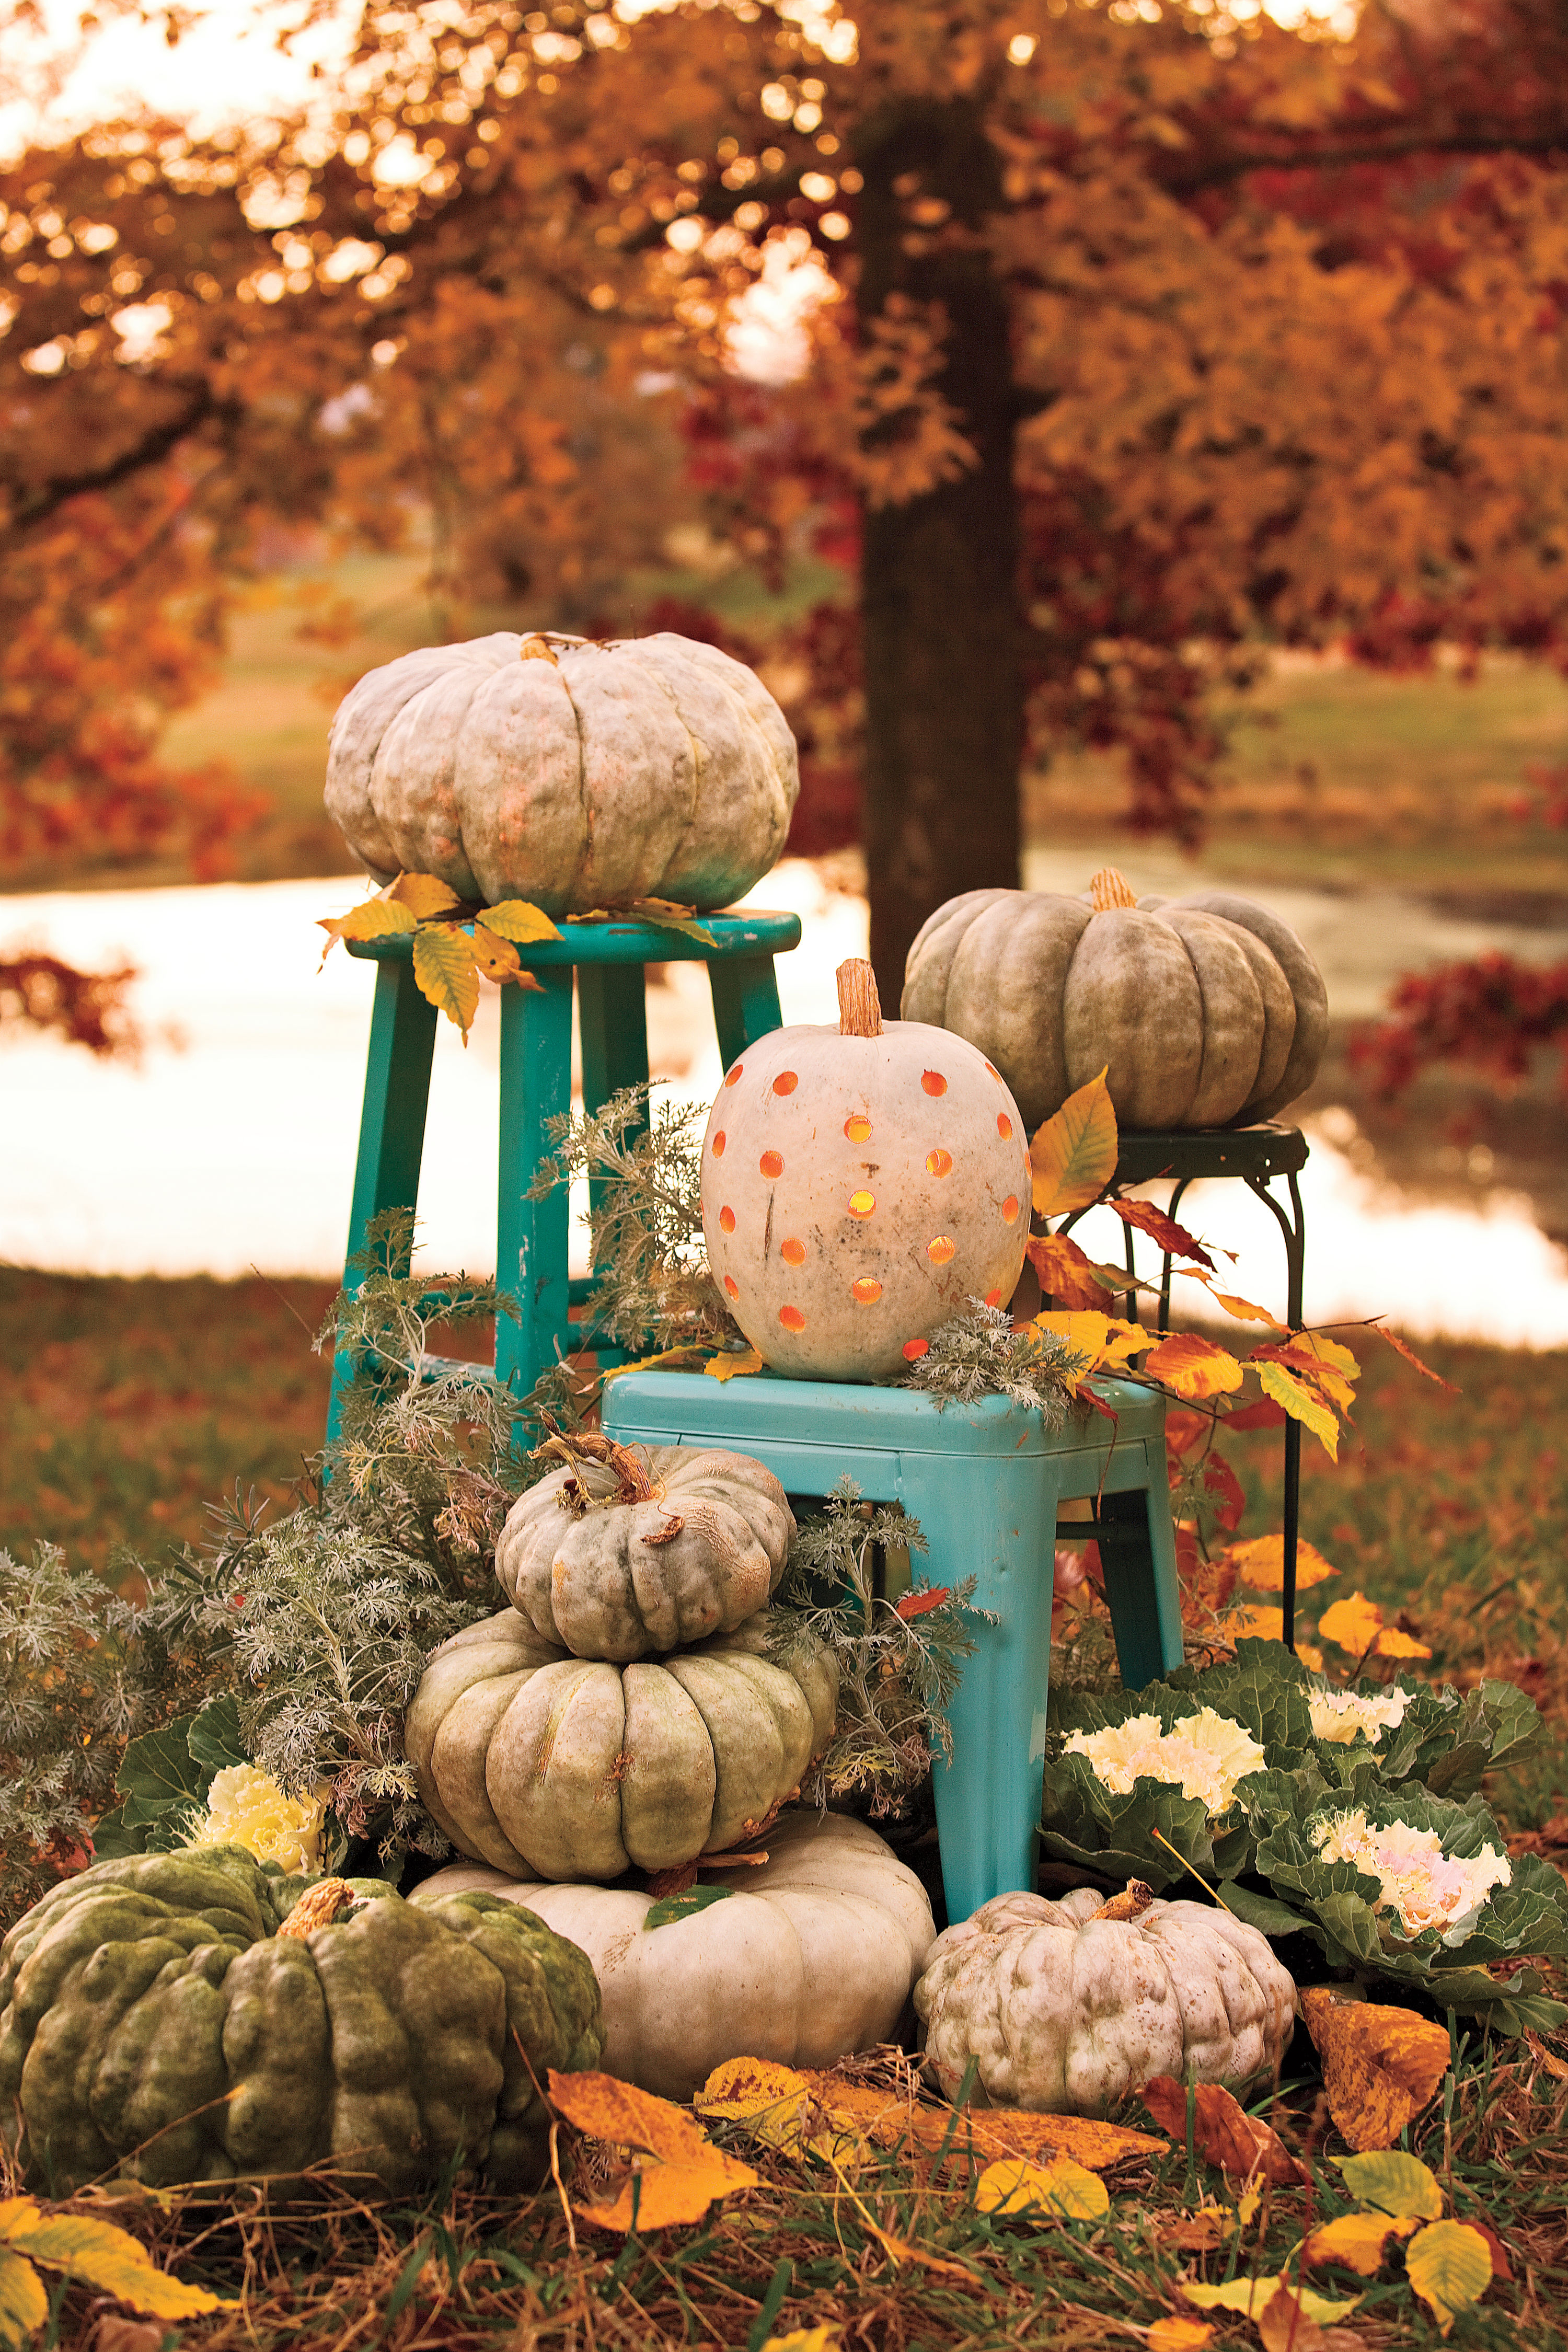 WATCH: Try These Clever Pumpkin-Carving Hacks